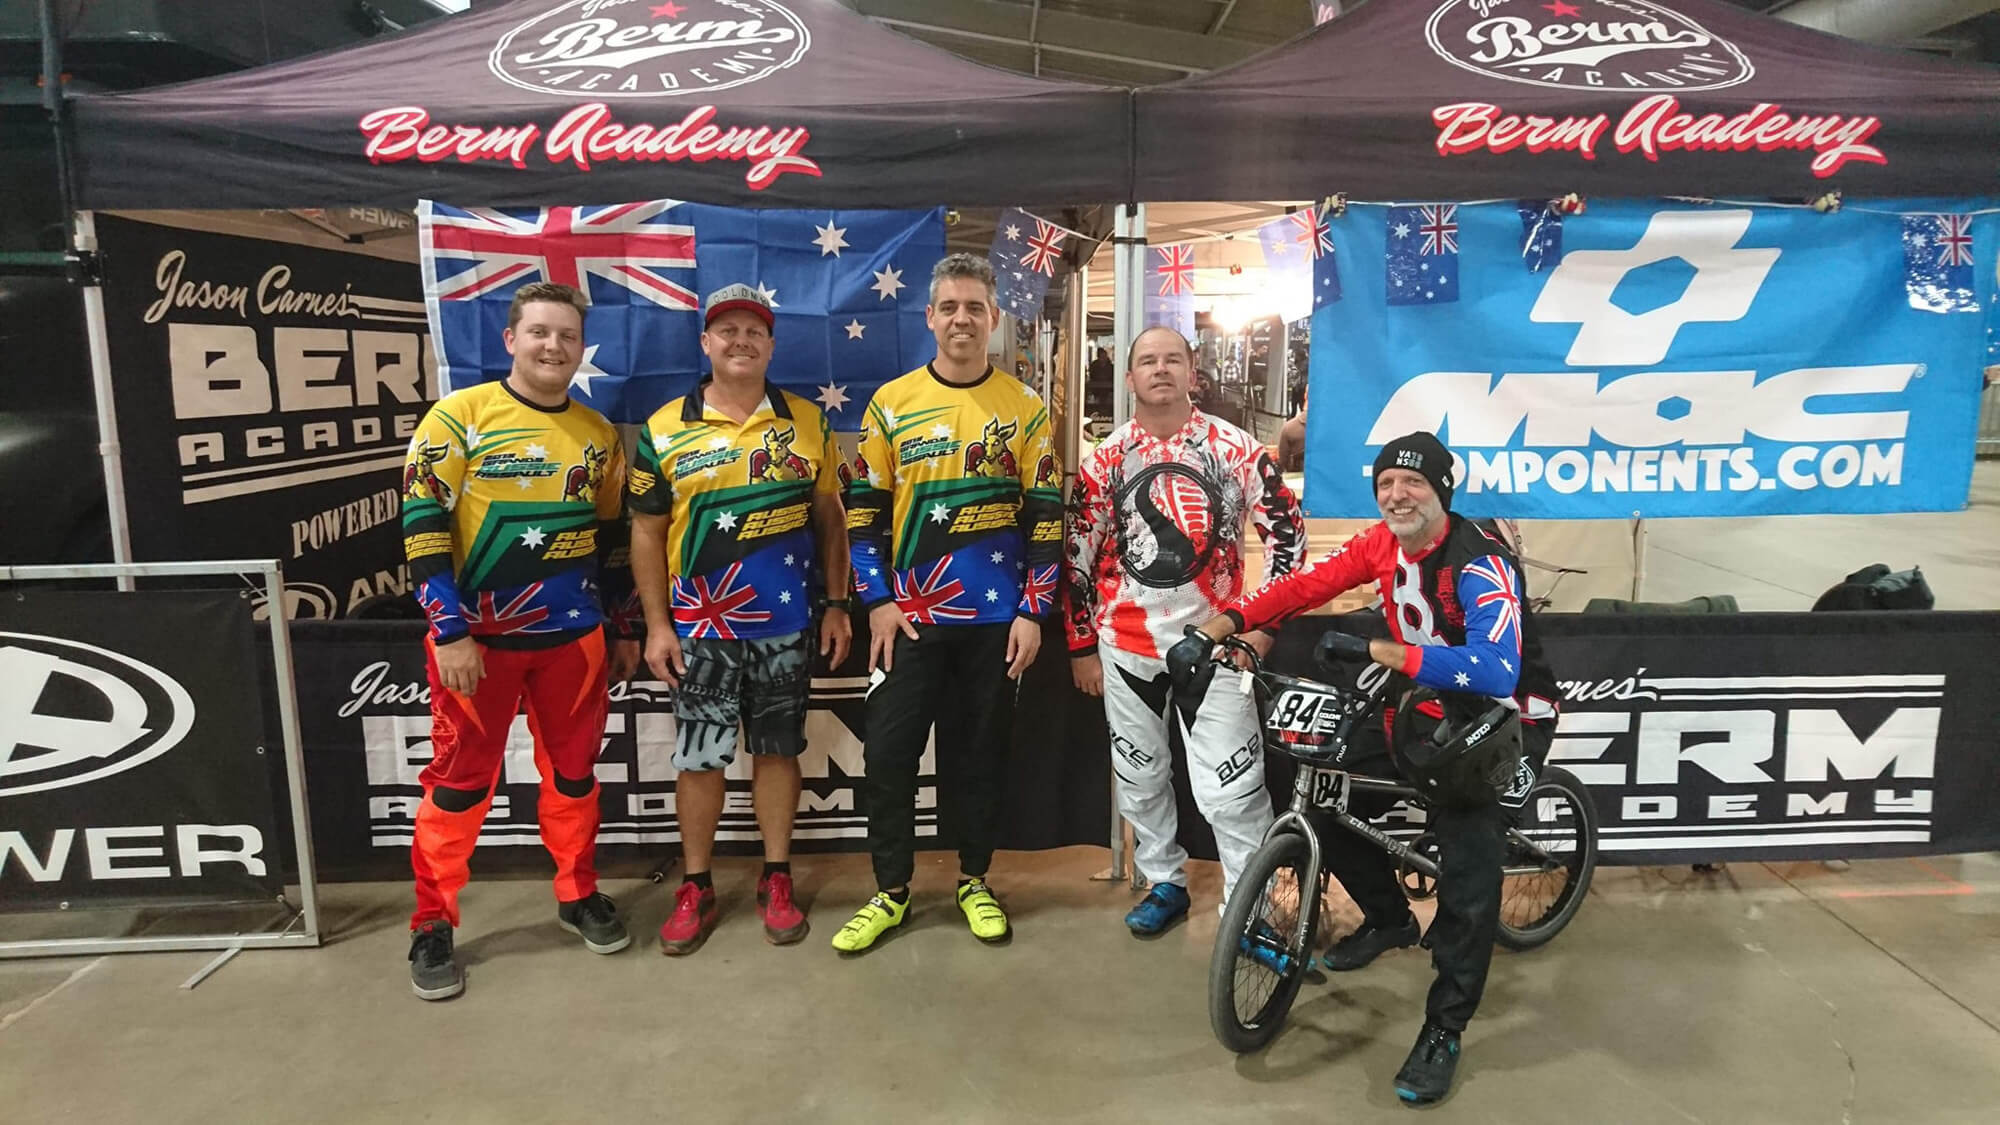 USA BMX Grands 2018 - Aussie Grand's Consulate - Bruce Morris